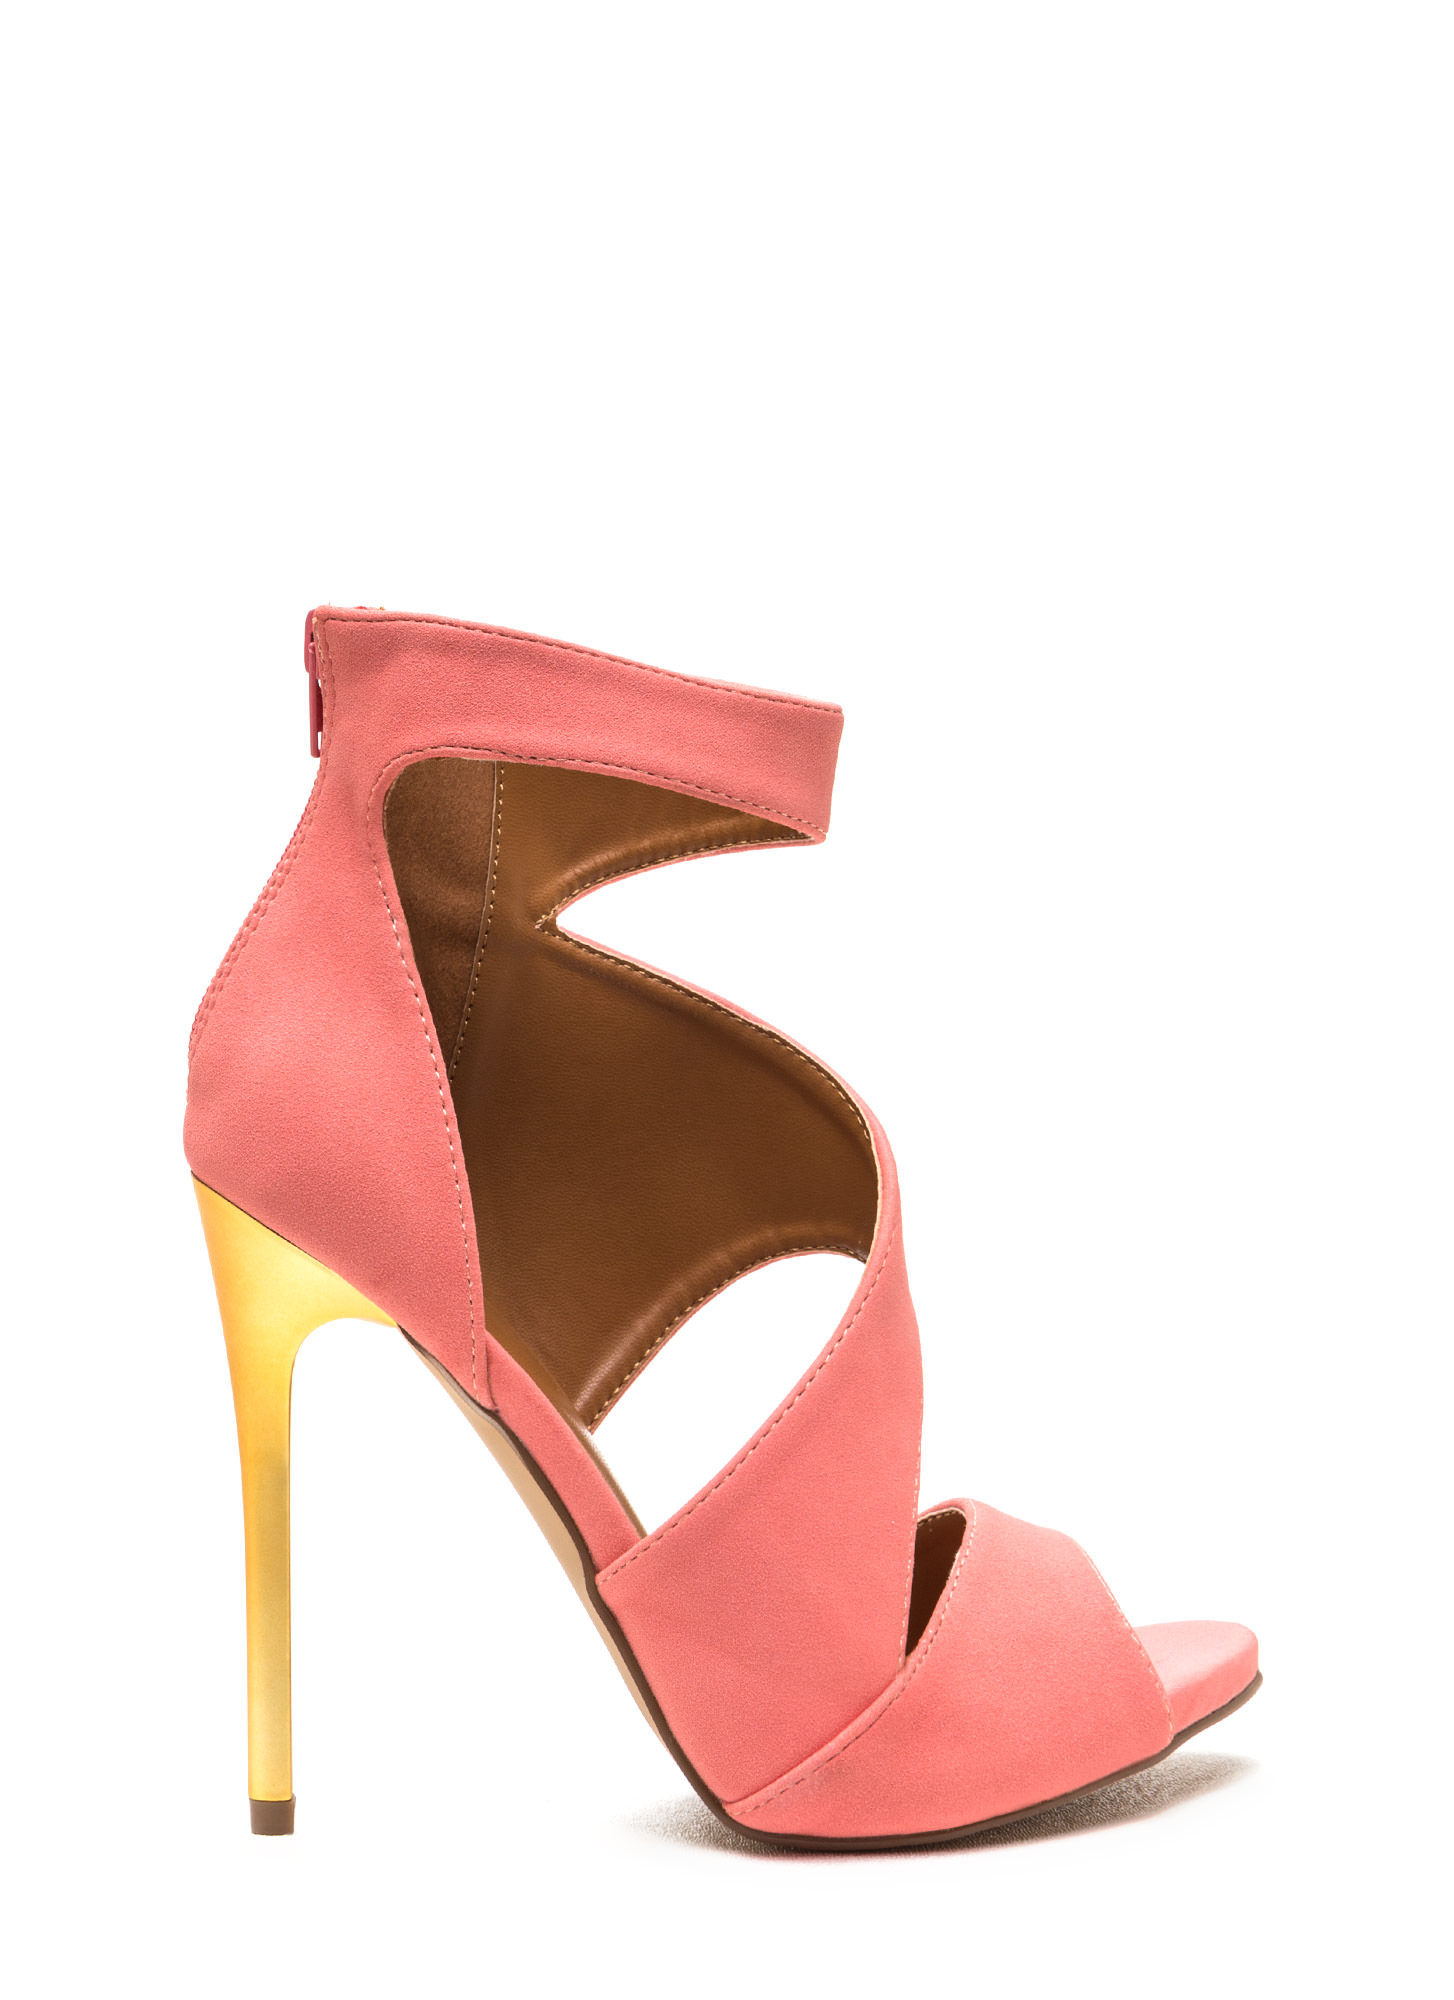 Sneak A Peek Cut-Out Faux Suede Heels BLUSH